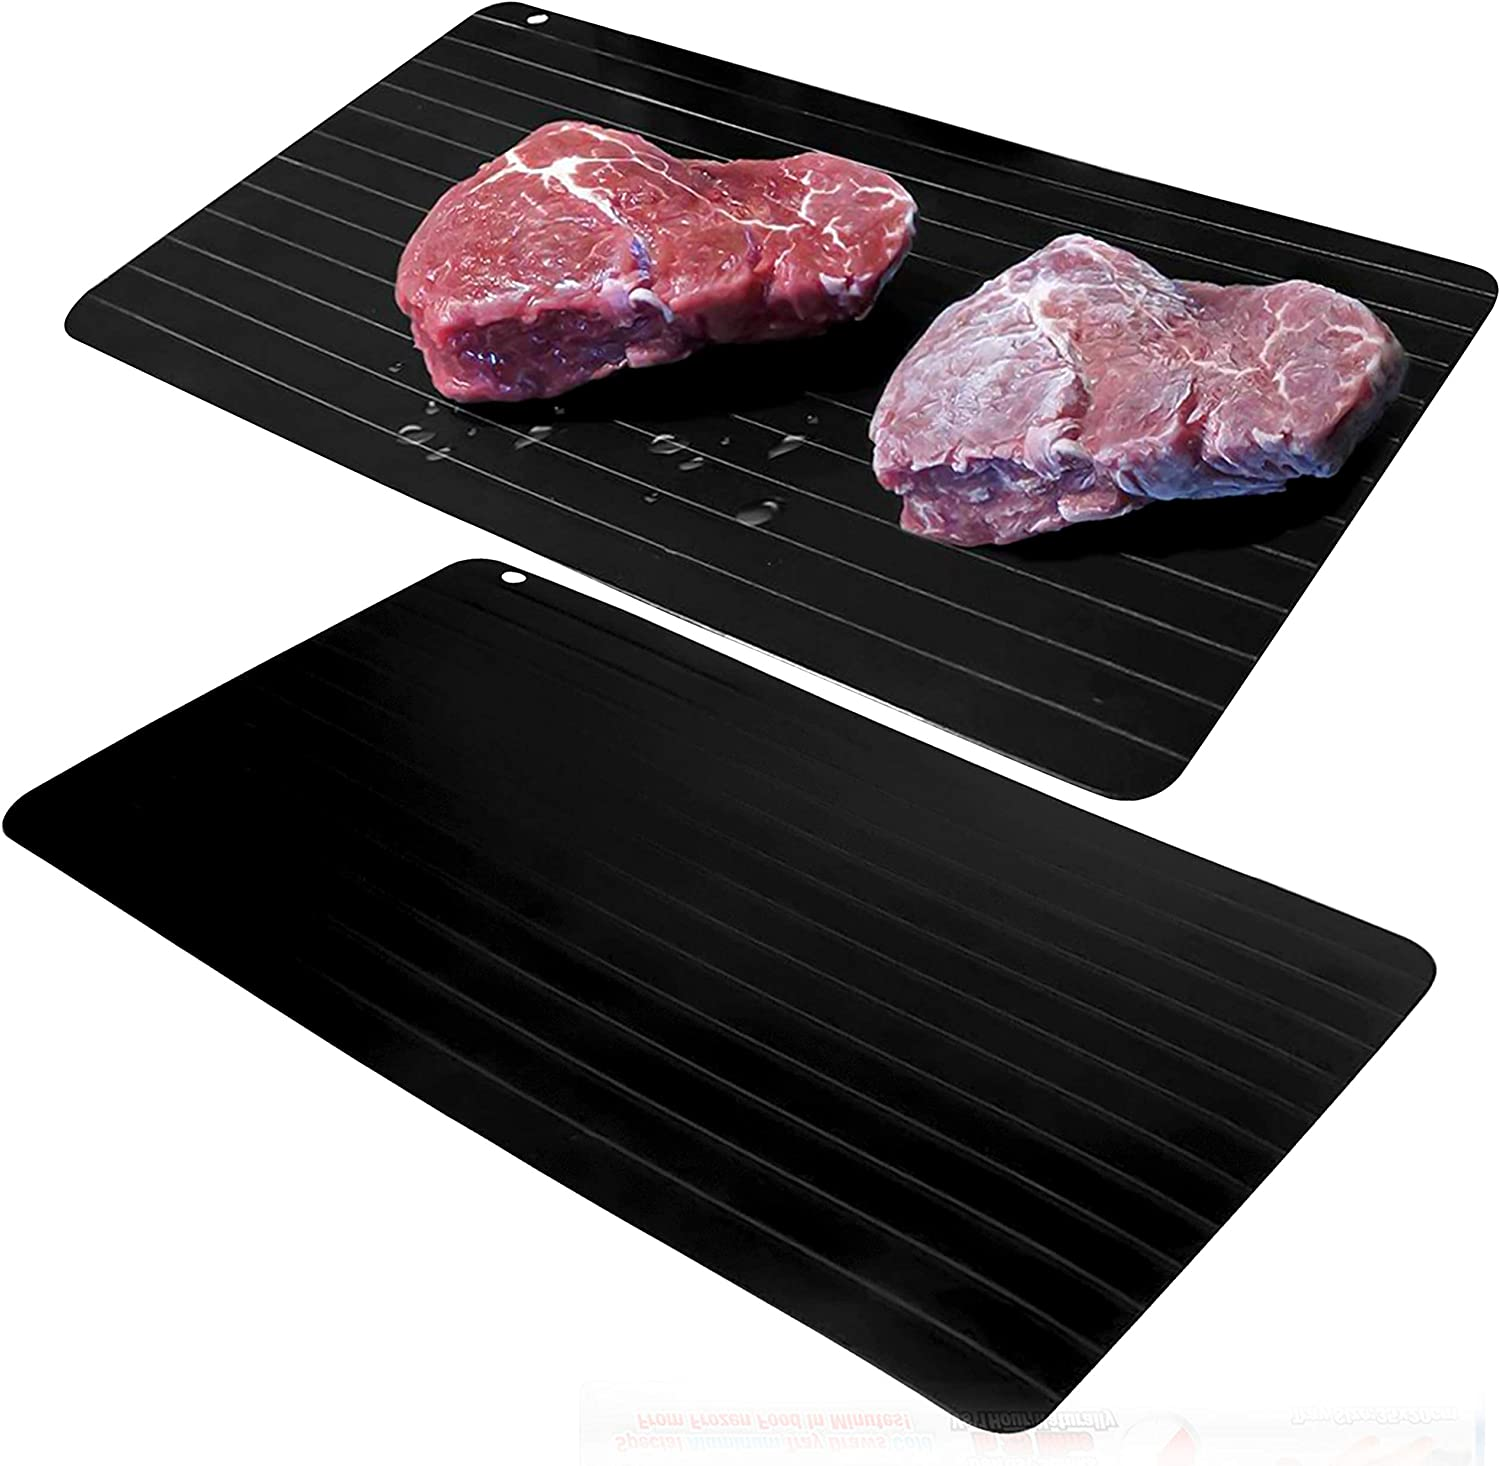 2 PACK Defrosting Tray Plate, Meat Thawing Board, Natural Eco-Friendly Defroster Mat No Electricity No Chemicals Needed Apply For Rapid and Fast Defrost Meat and Frozen Food (Large Size 14x8In)